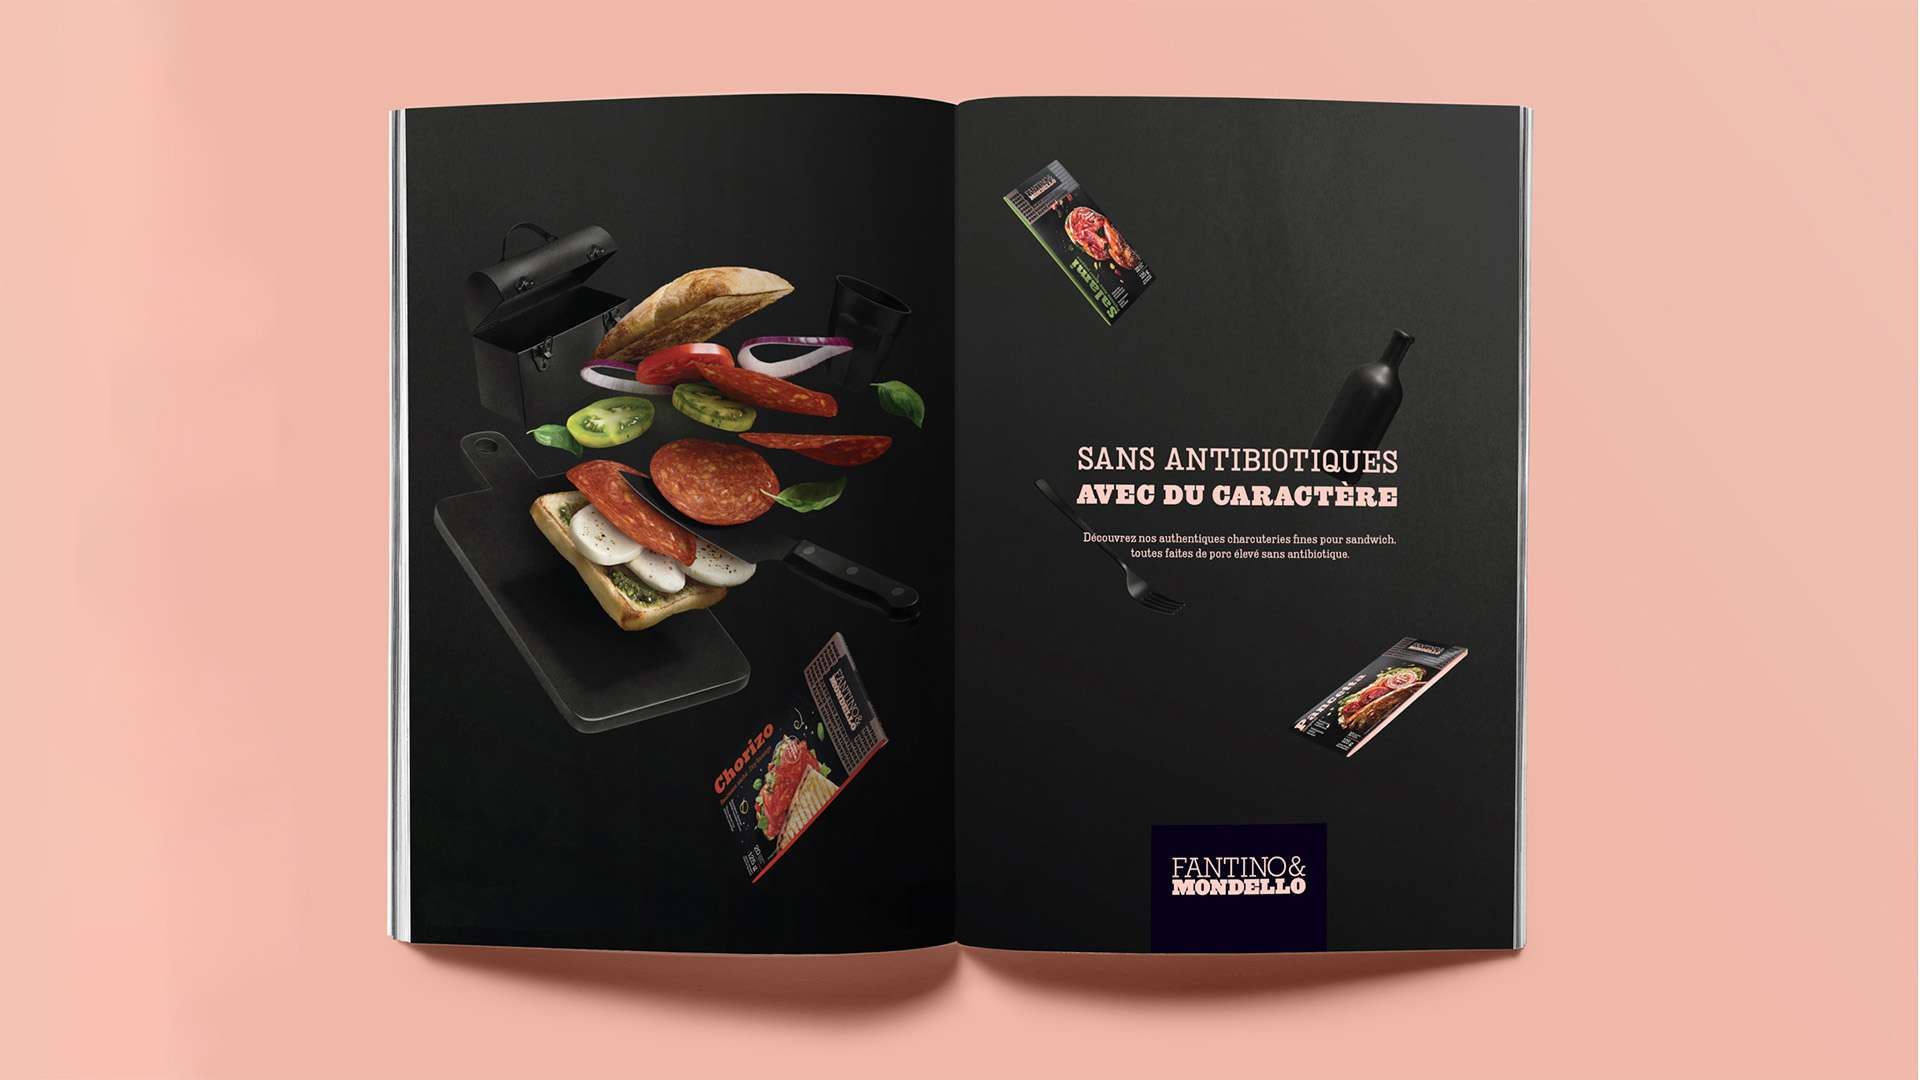 capicollo ham photographed by Mathieu Lévesque for Fantino & Mondello with Rethink agency